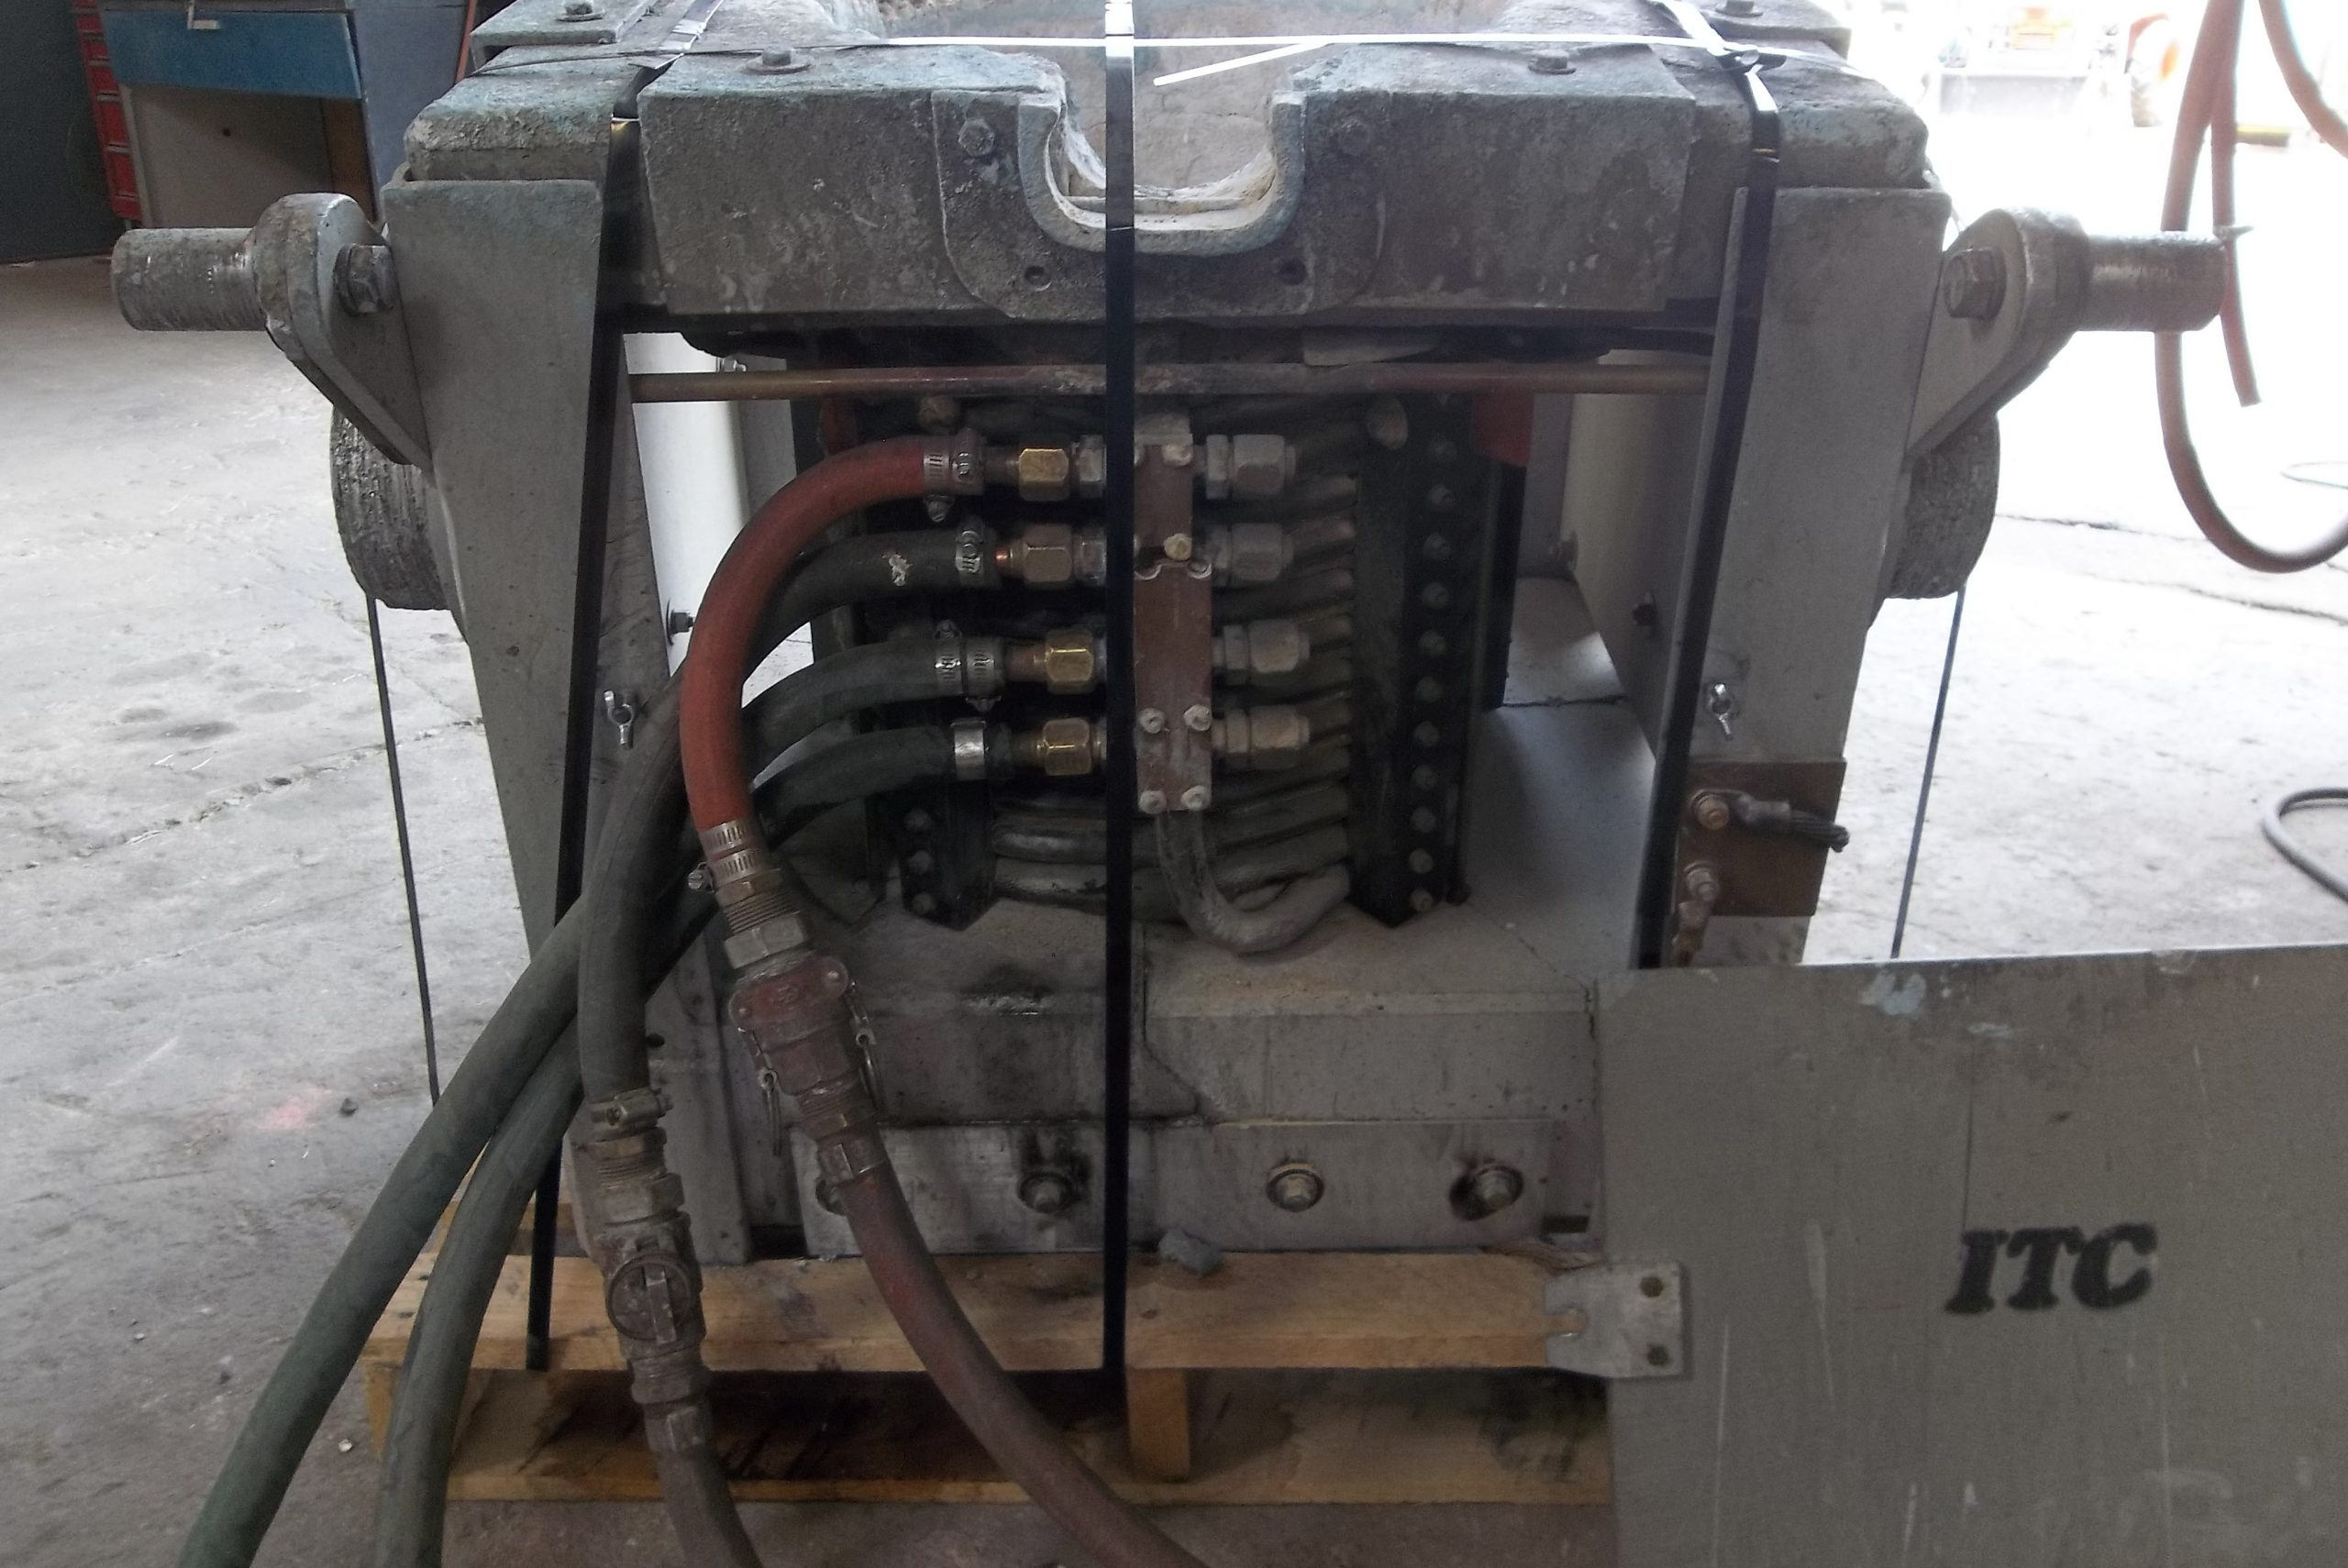 Rebuild of 300lb box furnace and coil-before